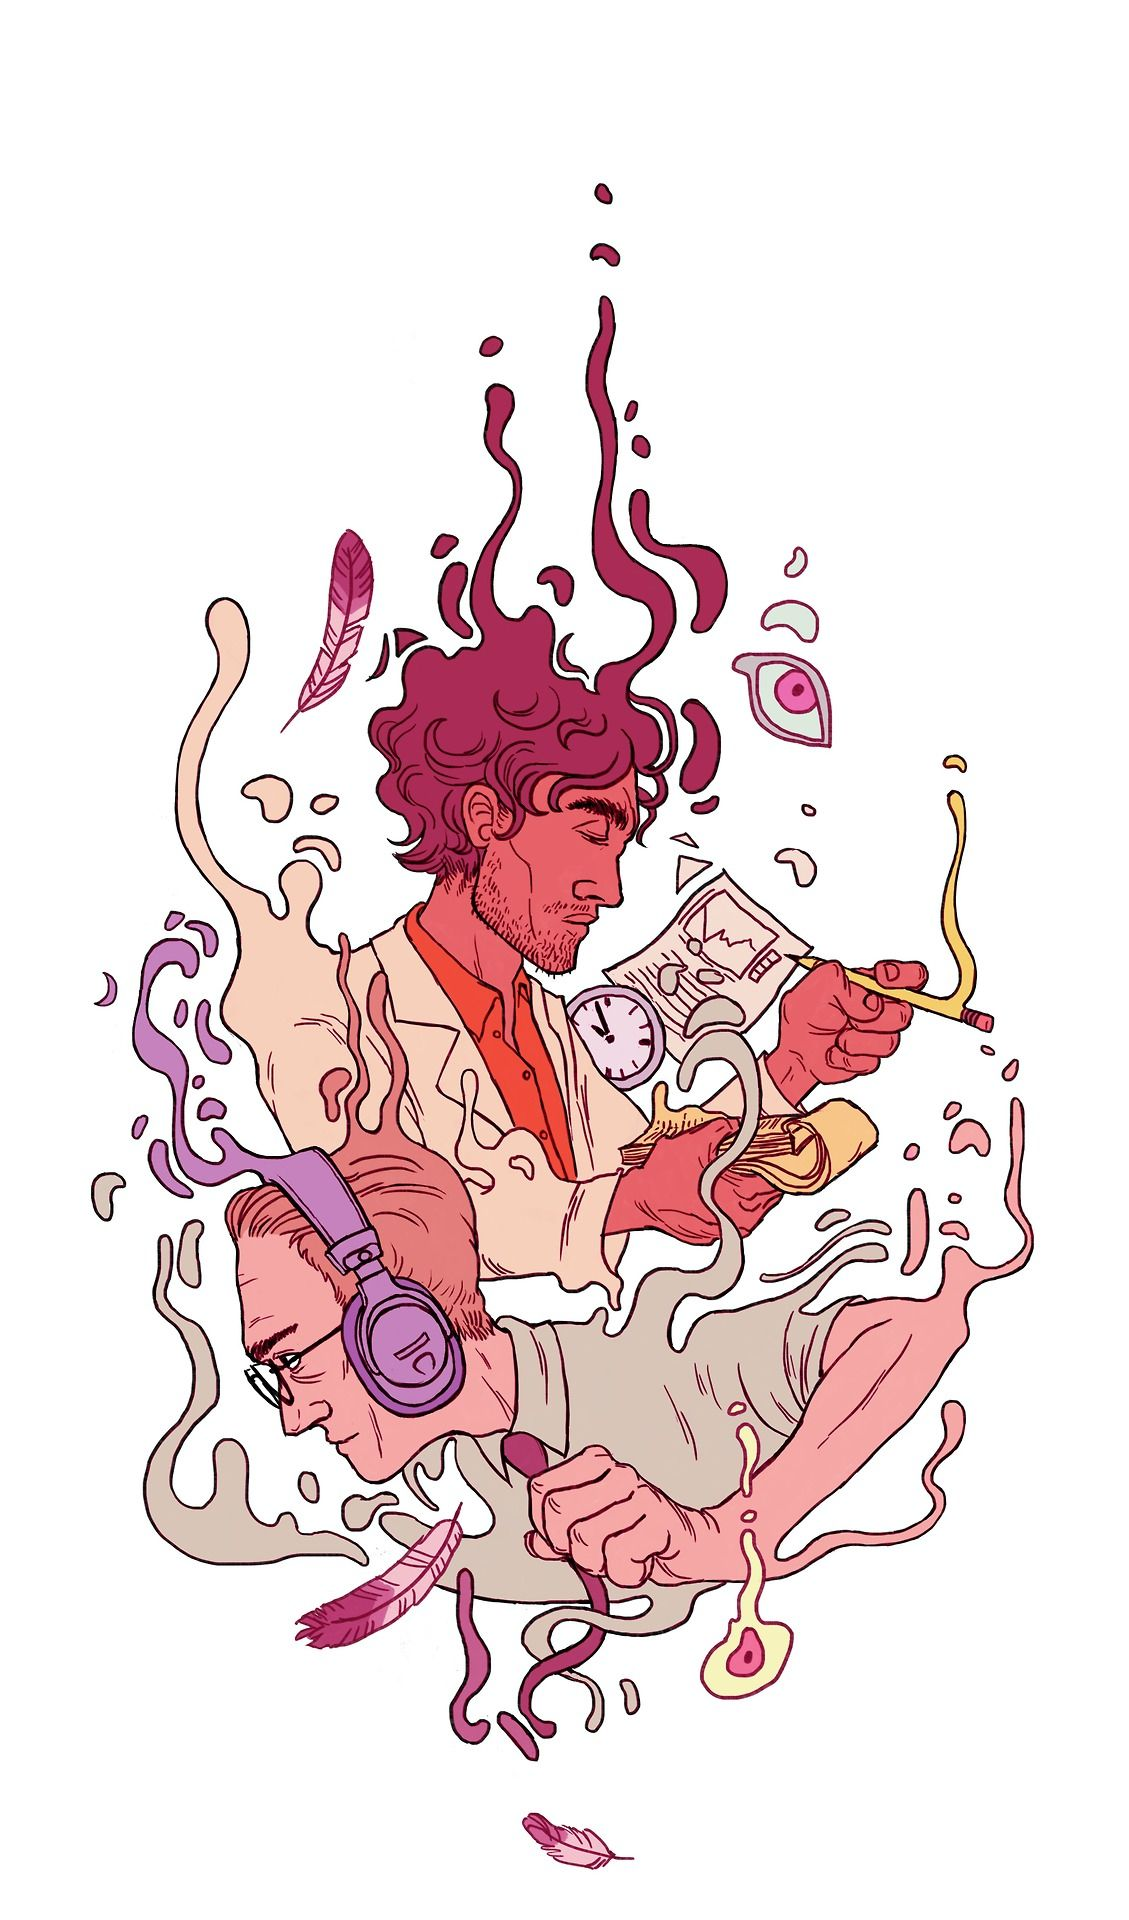 jenndrawsthings: I love the fact that Welcome to Night Vale is a thing that exists. It's just the right combination of ridiculous, horror, ...